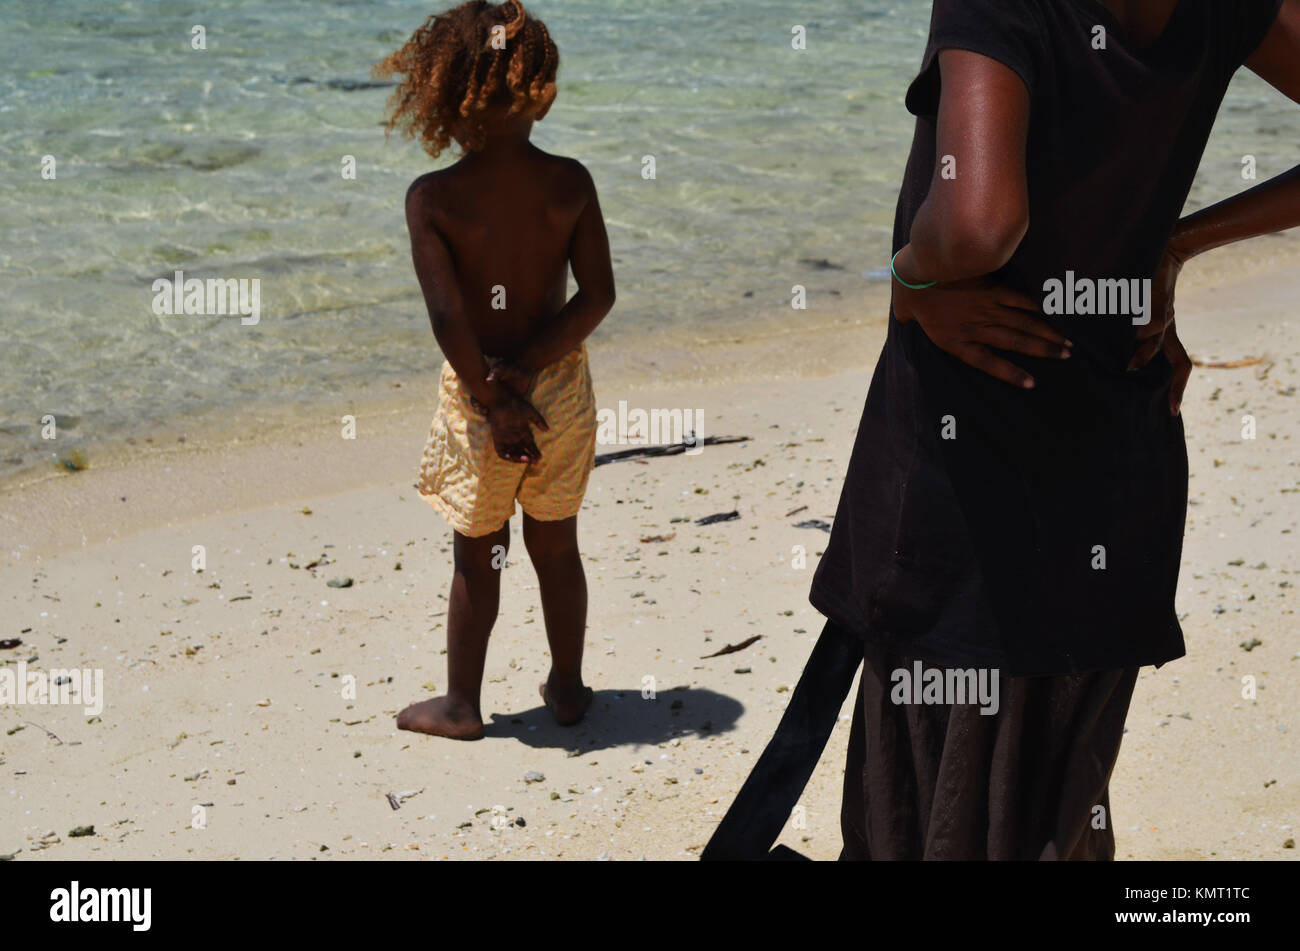 Mother and child by the water - Stock Image